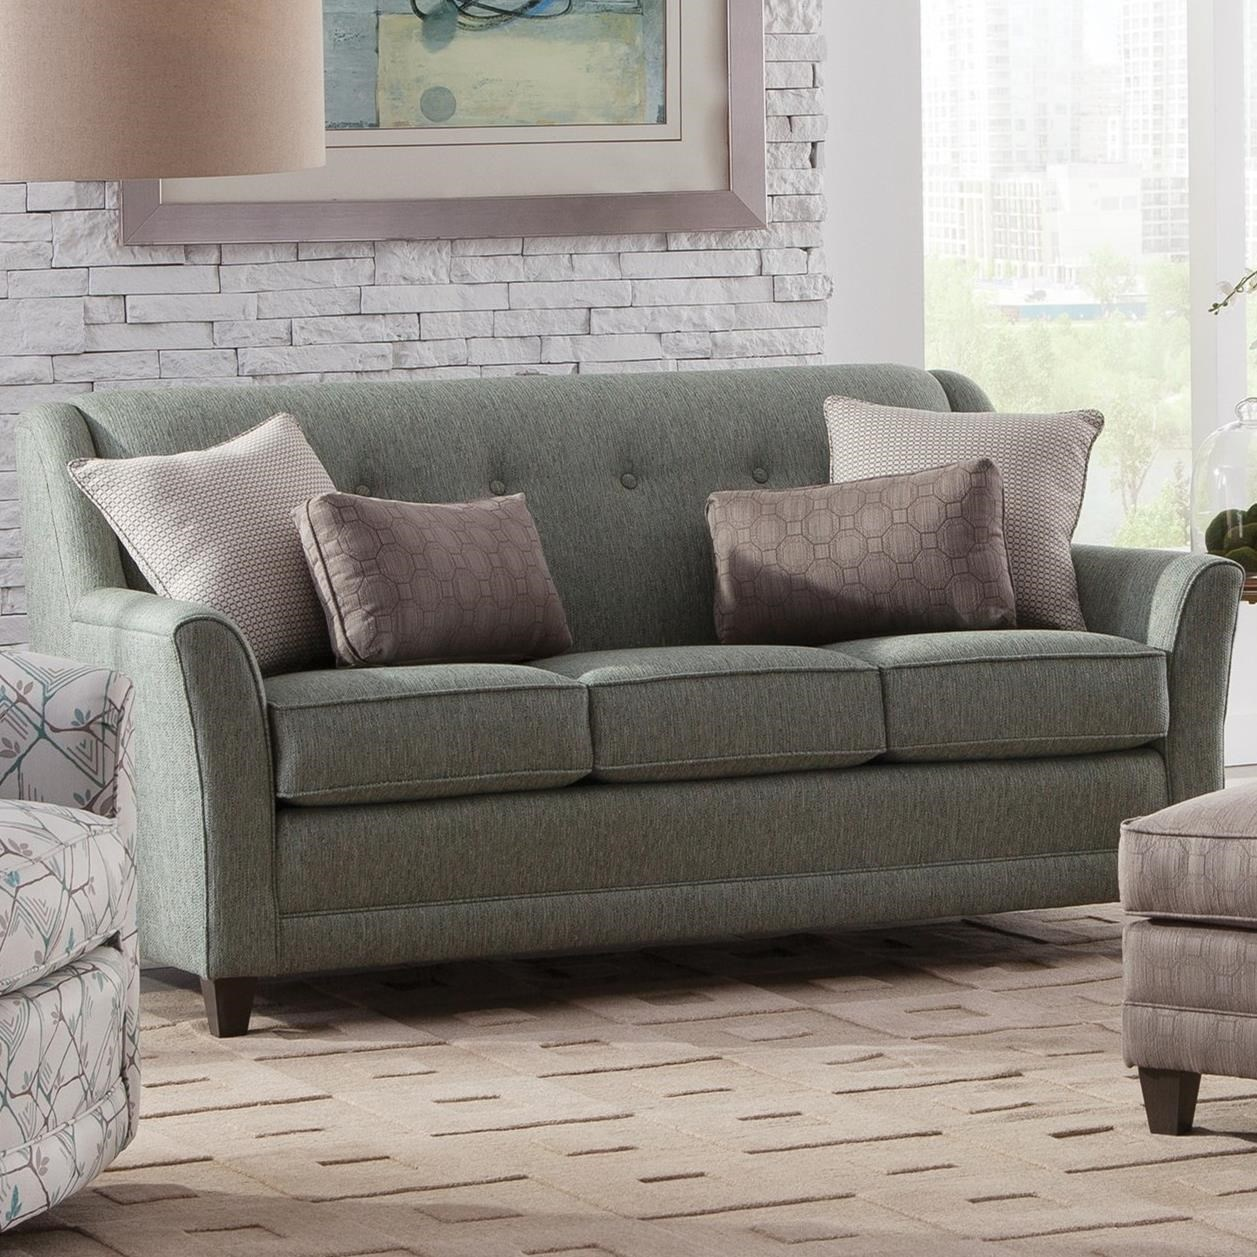 236 Mid-Size Sofa by Smith Brothers at Mueller Furniture